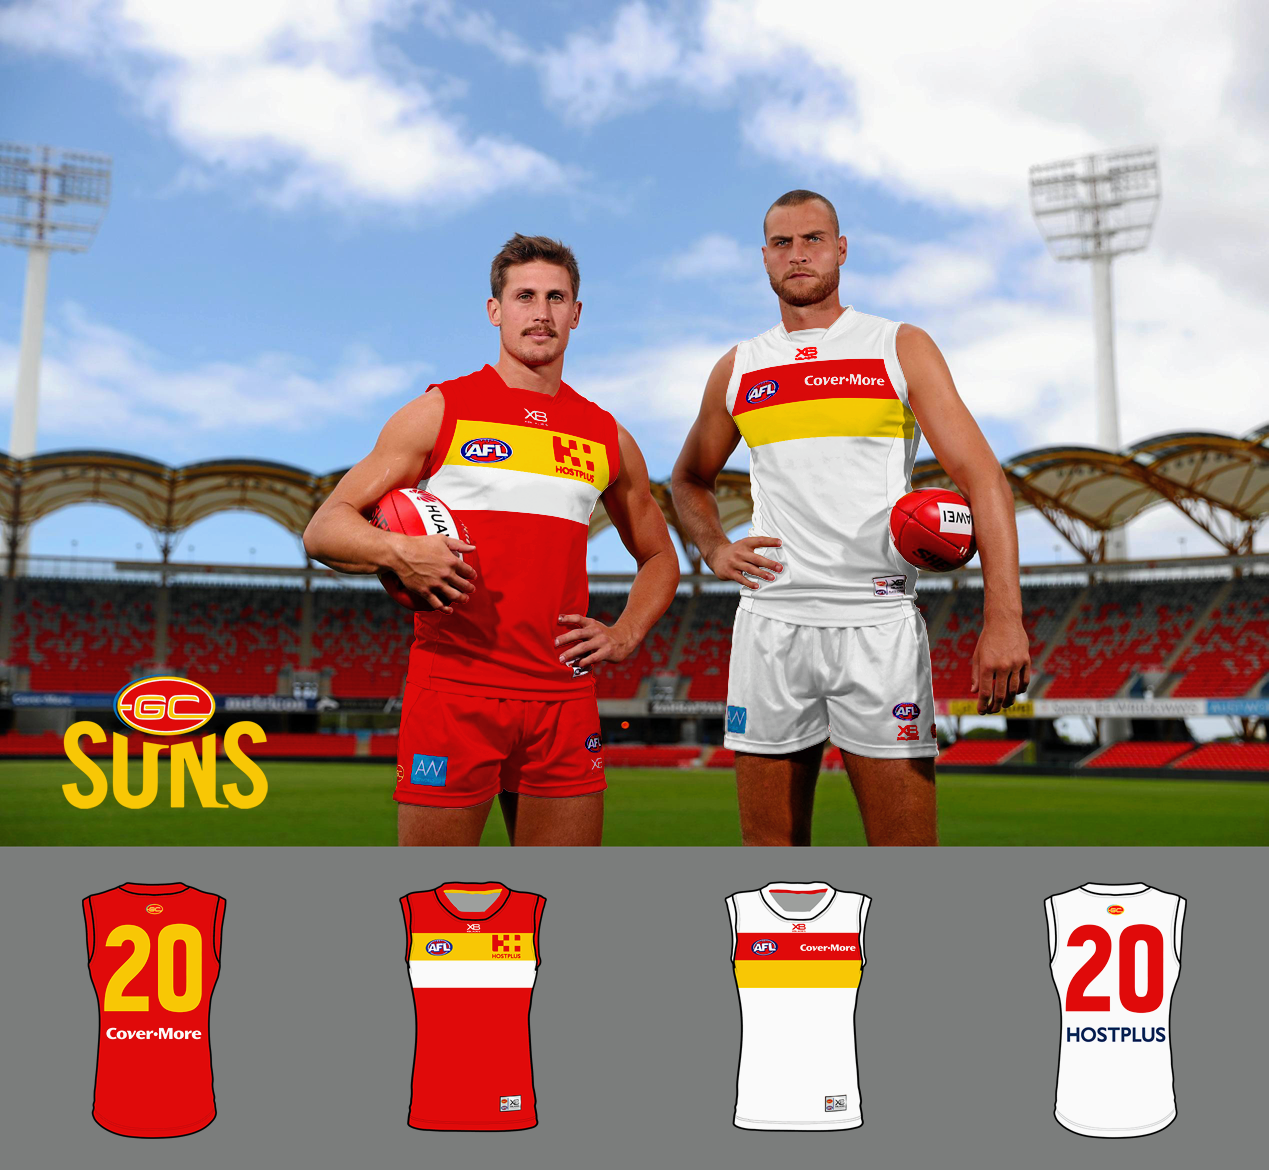 GoodPoint gcsuns2020.png